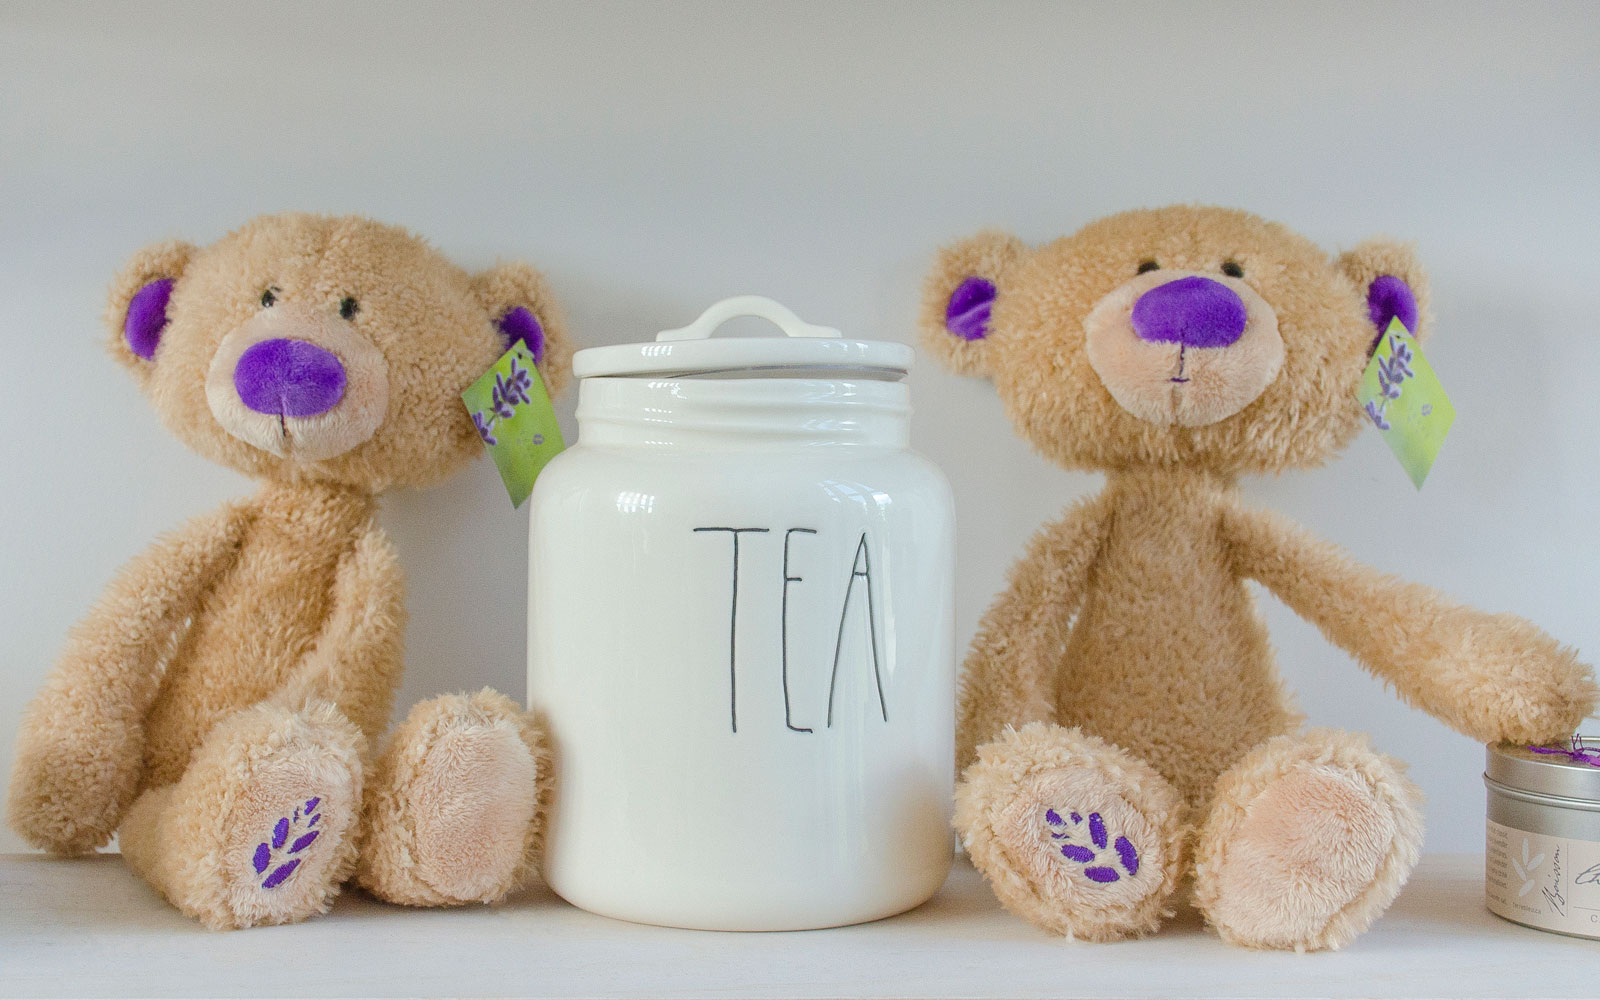 Teddy-Bears-Tea-1600x